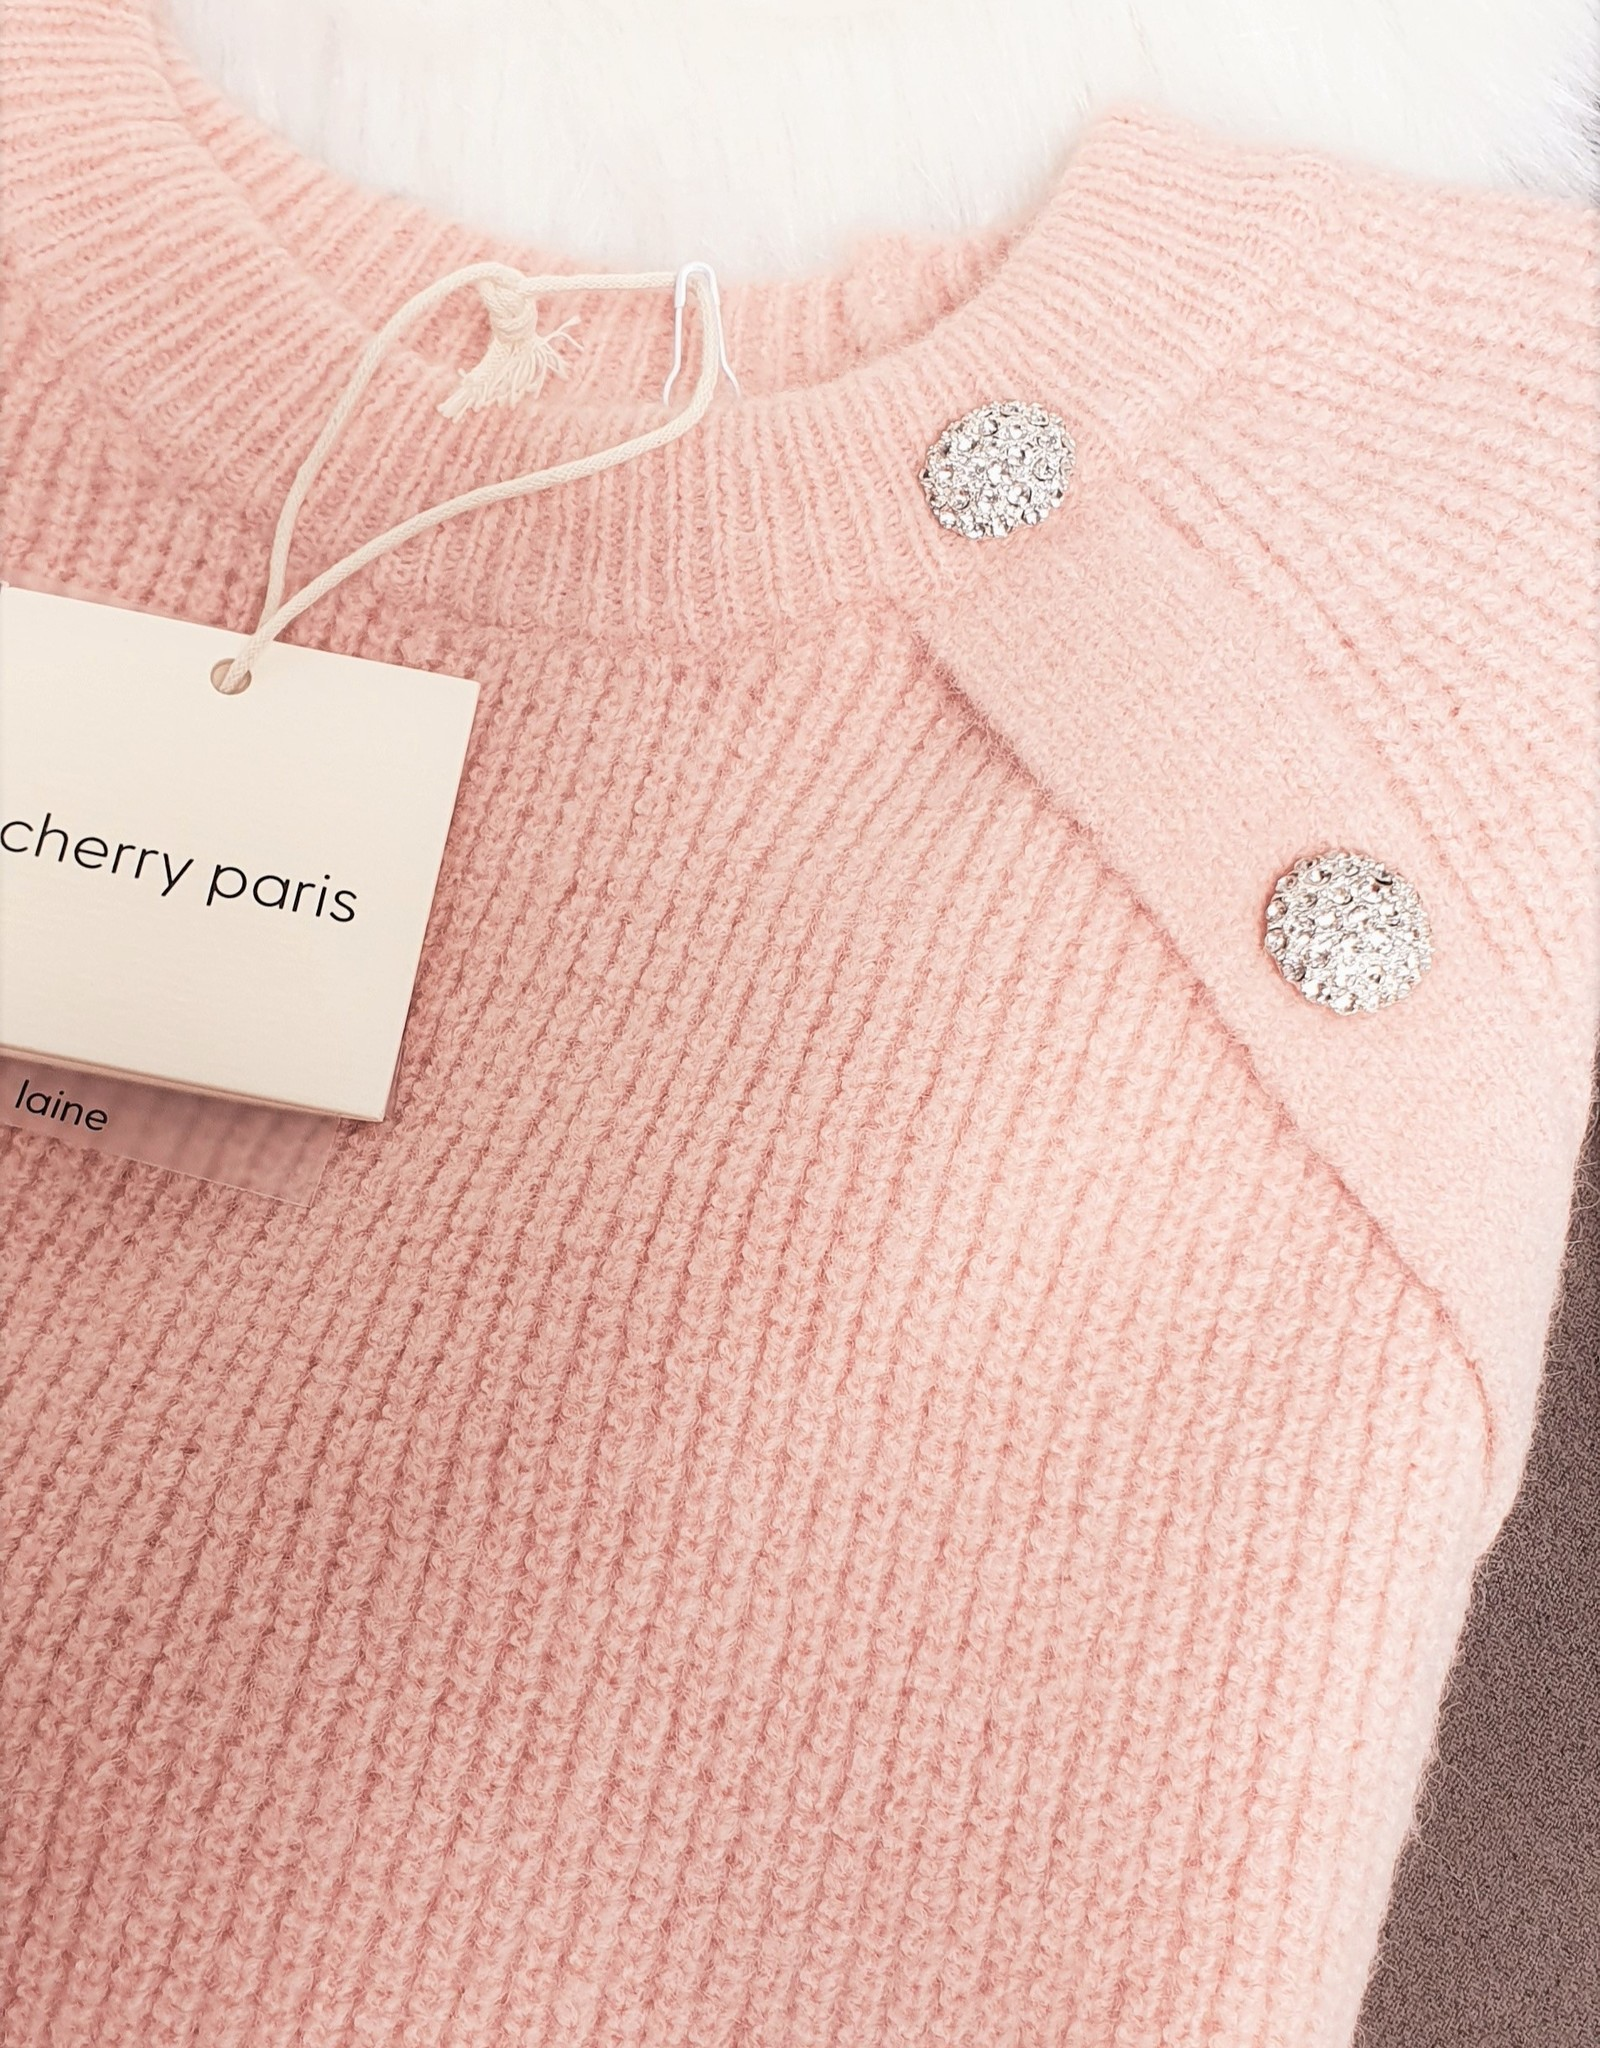 Cherry Paris Officiel Cherry pink sweater